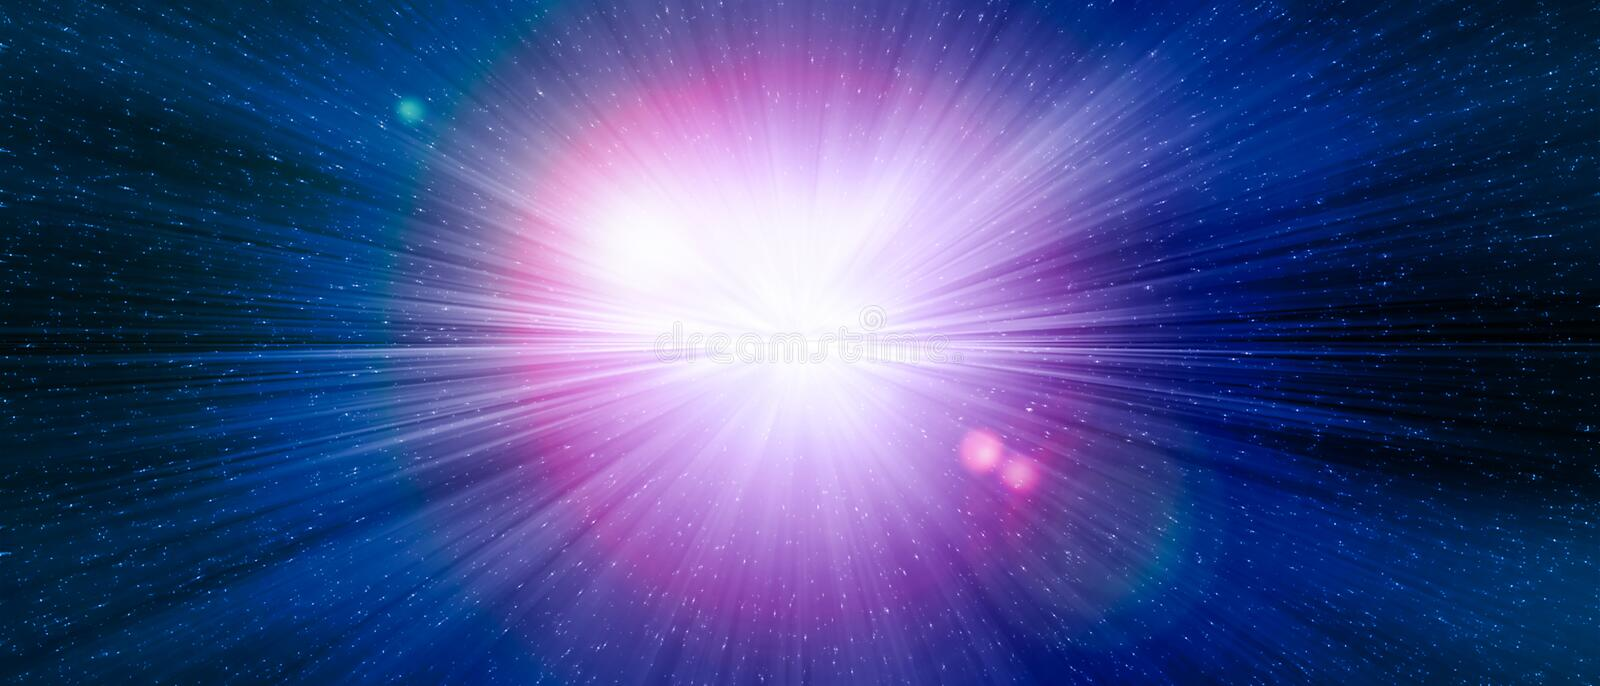 Star gate blue explosion in a galaxy of an universe. royalty free illustration